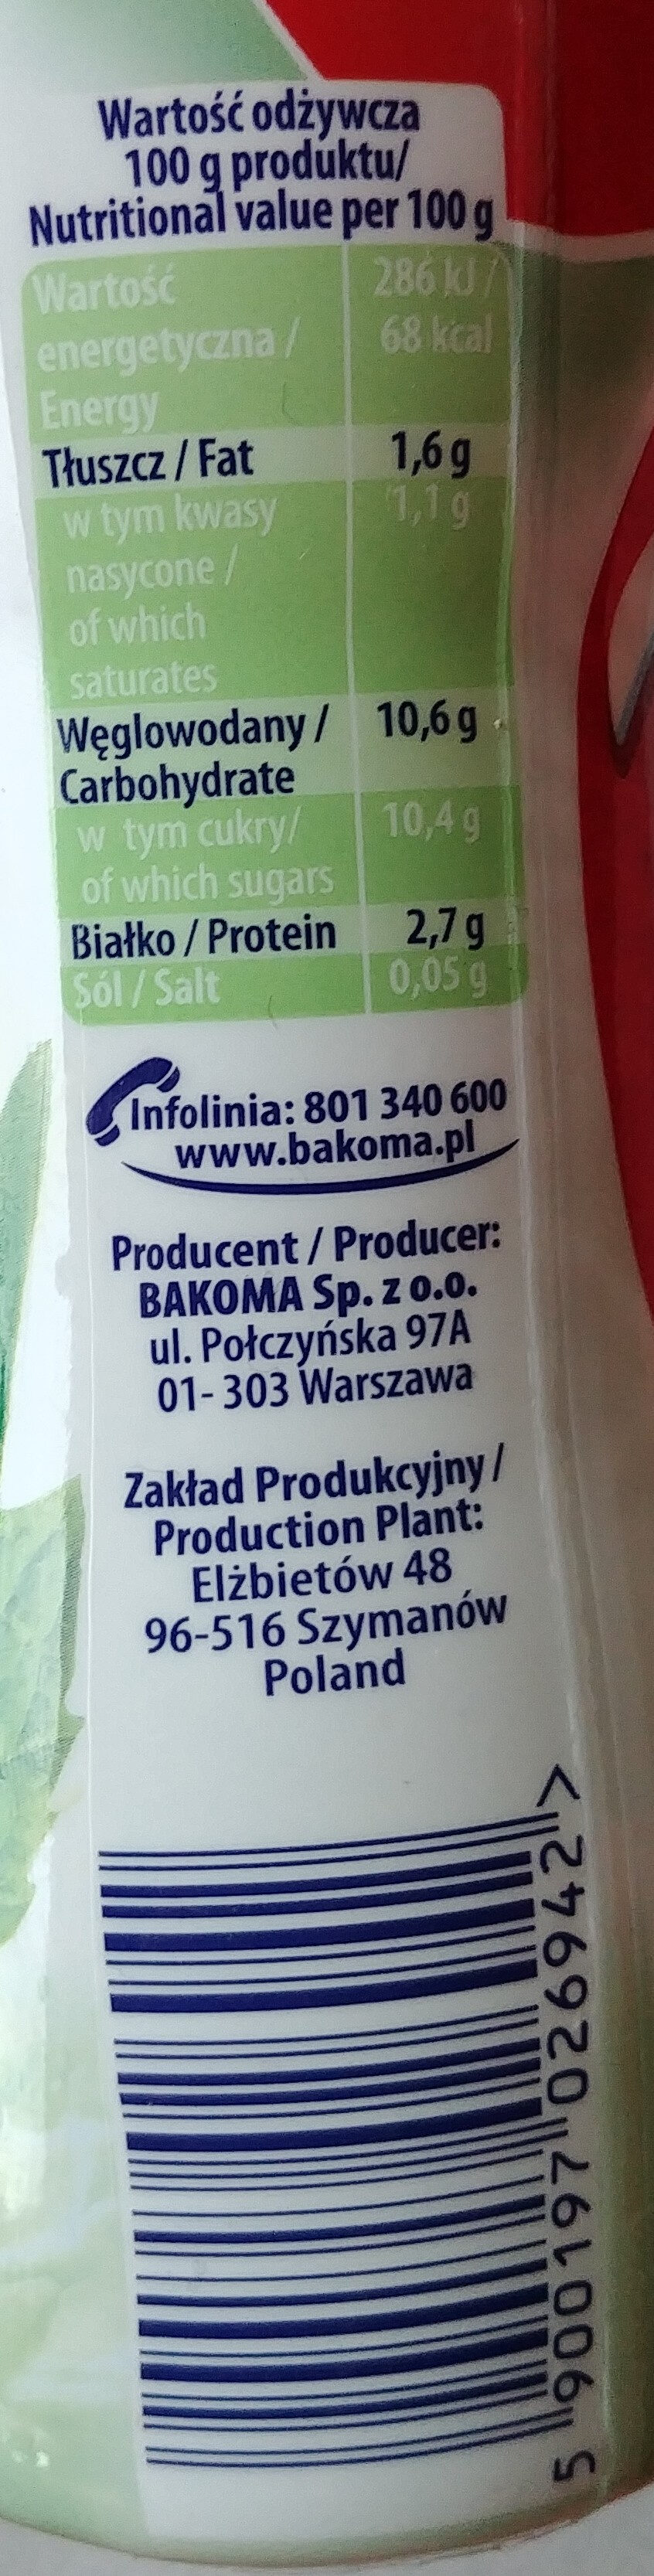 Jogurt do picia aloes - mięta. - Nutrition facts